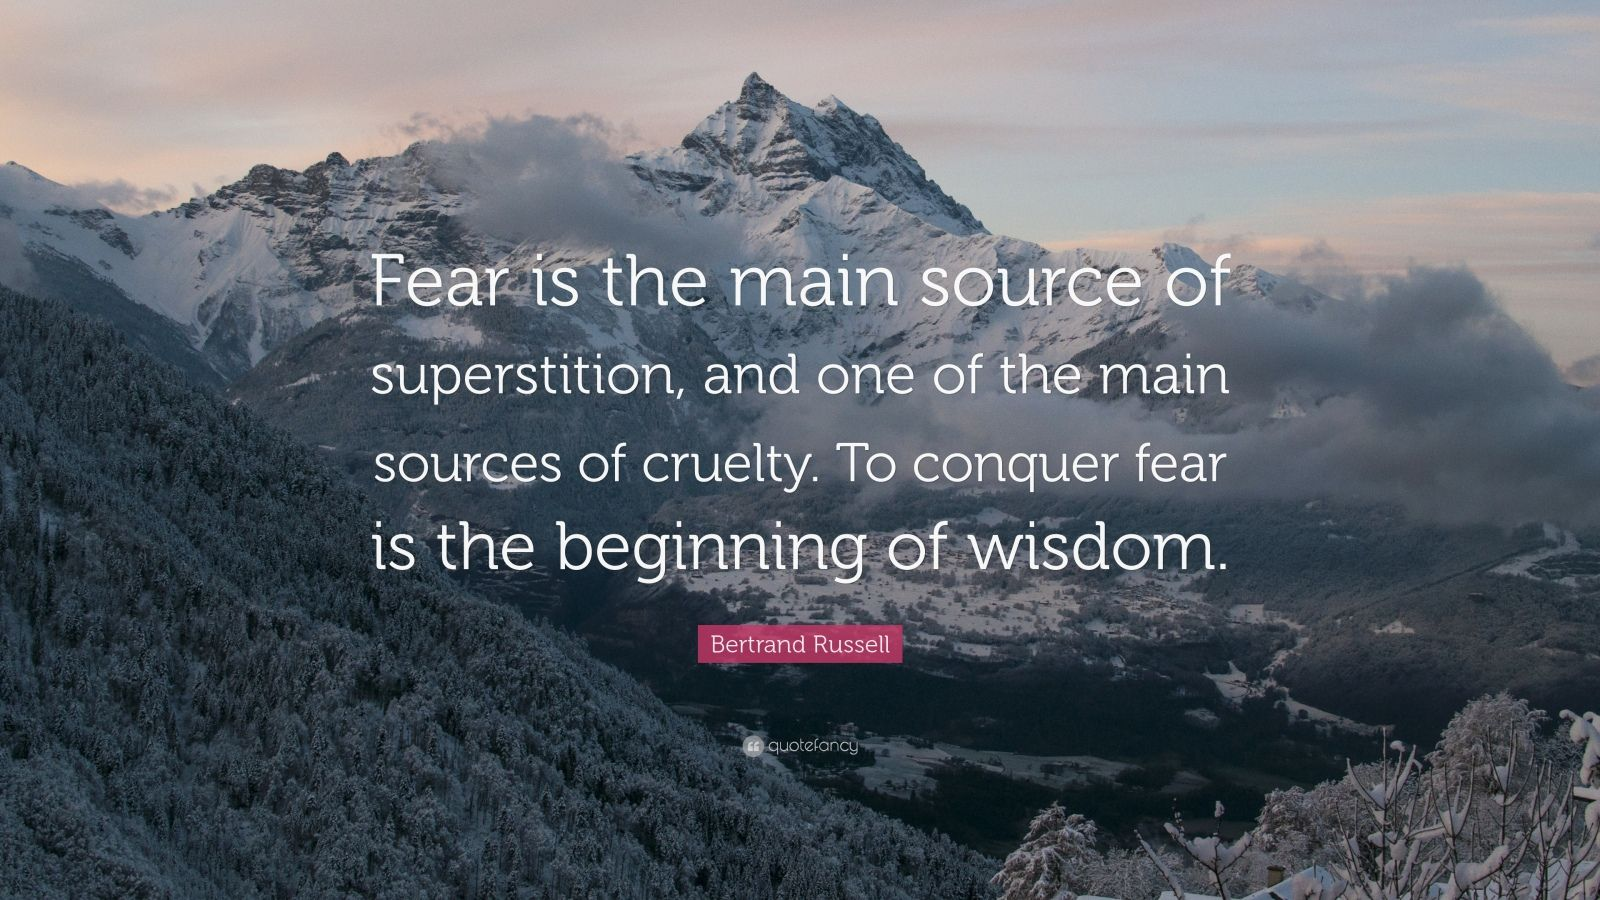 """Bertrand Russell Quote: """"Fear is the main source of superstition, and one of the main sources of cruelty. To conquer fear is the beginning of wisdom."""""""